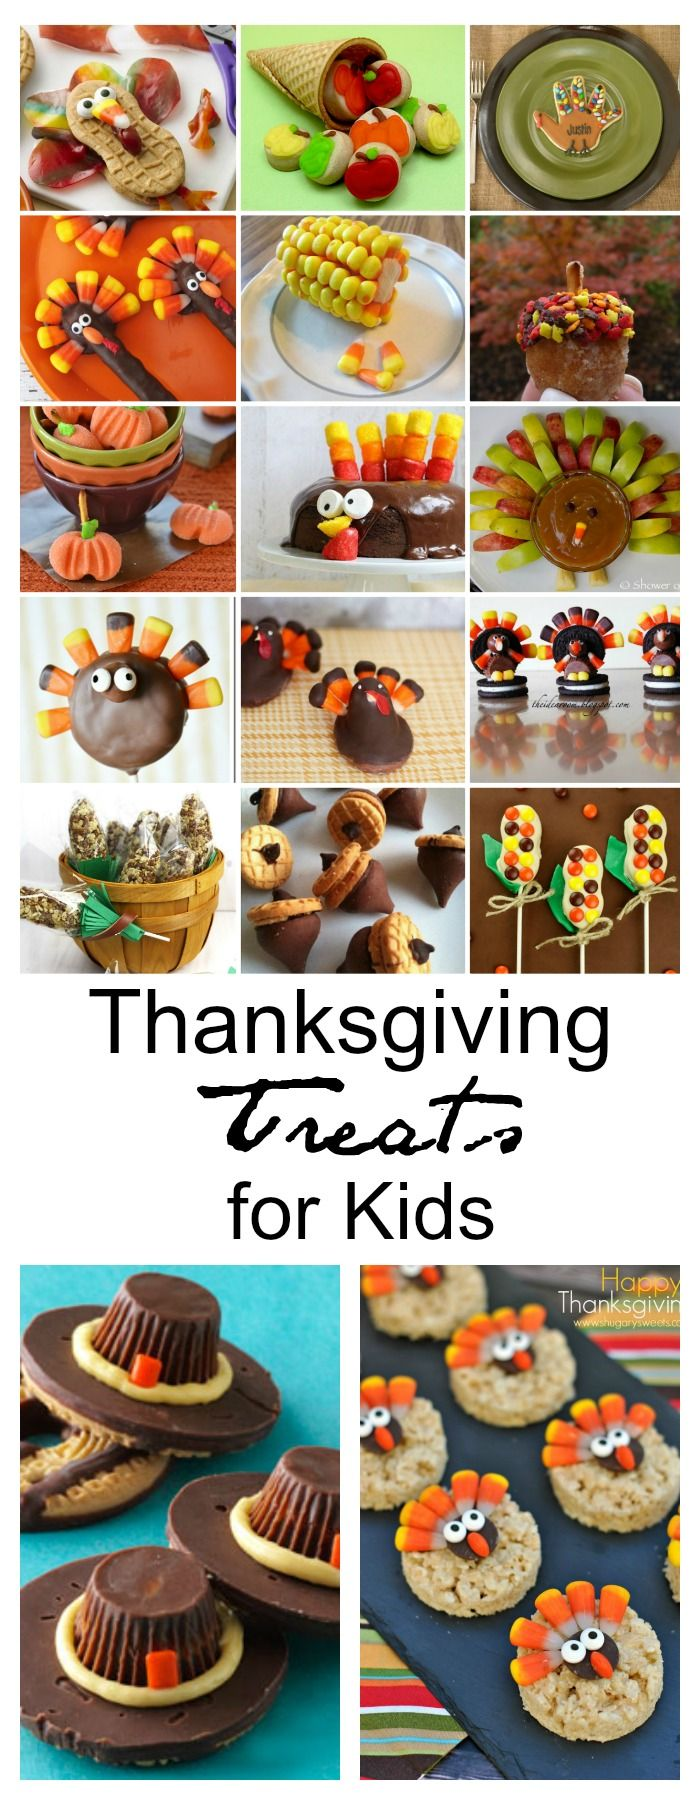 Food faith amp design thanksgiving goodies - Thanksgiving Treats For Kids